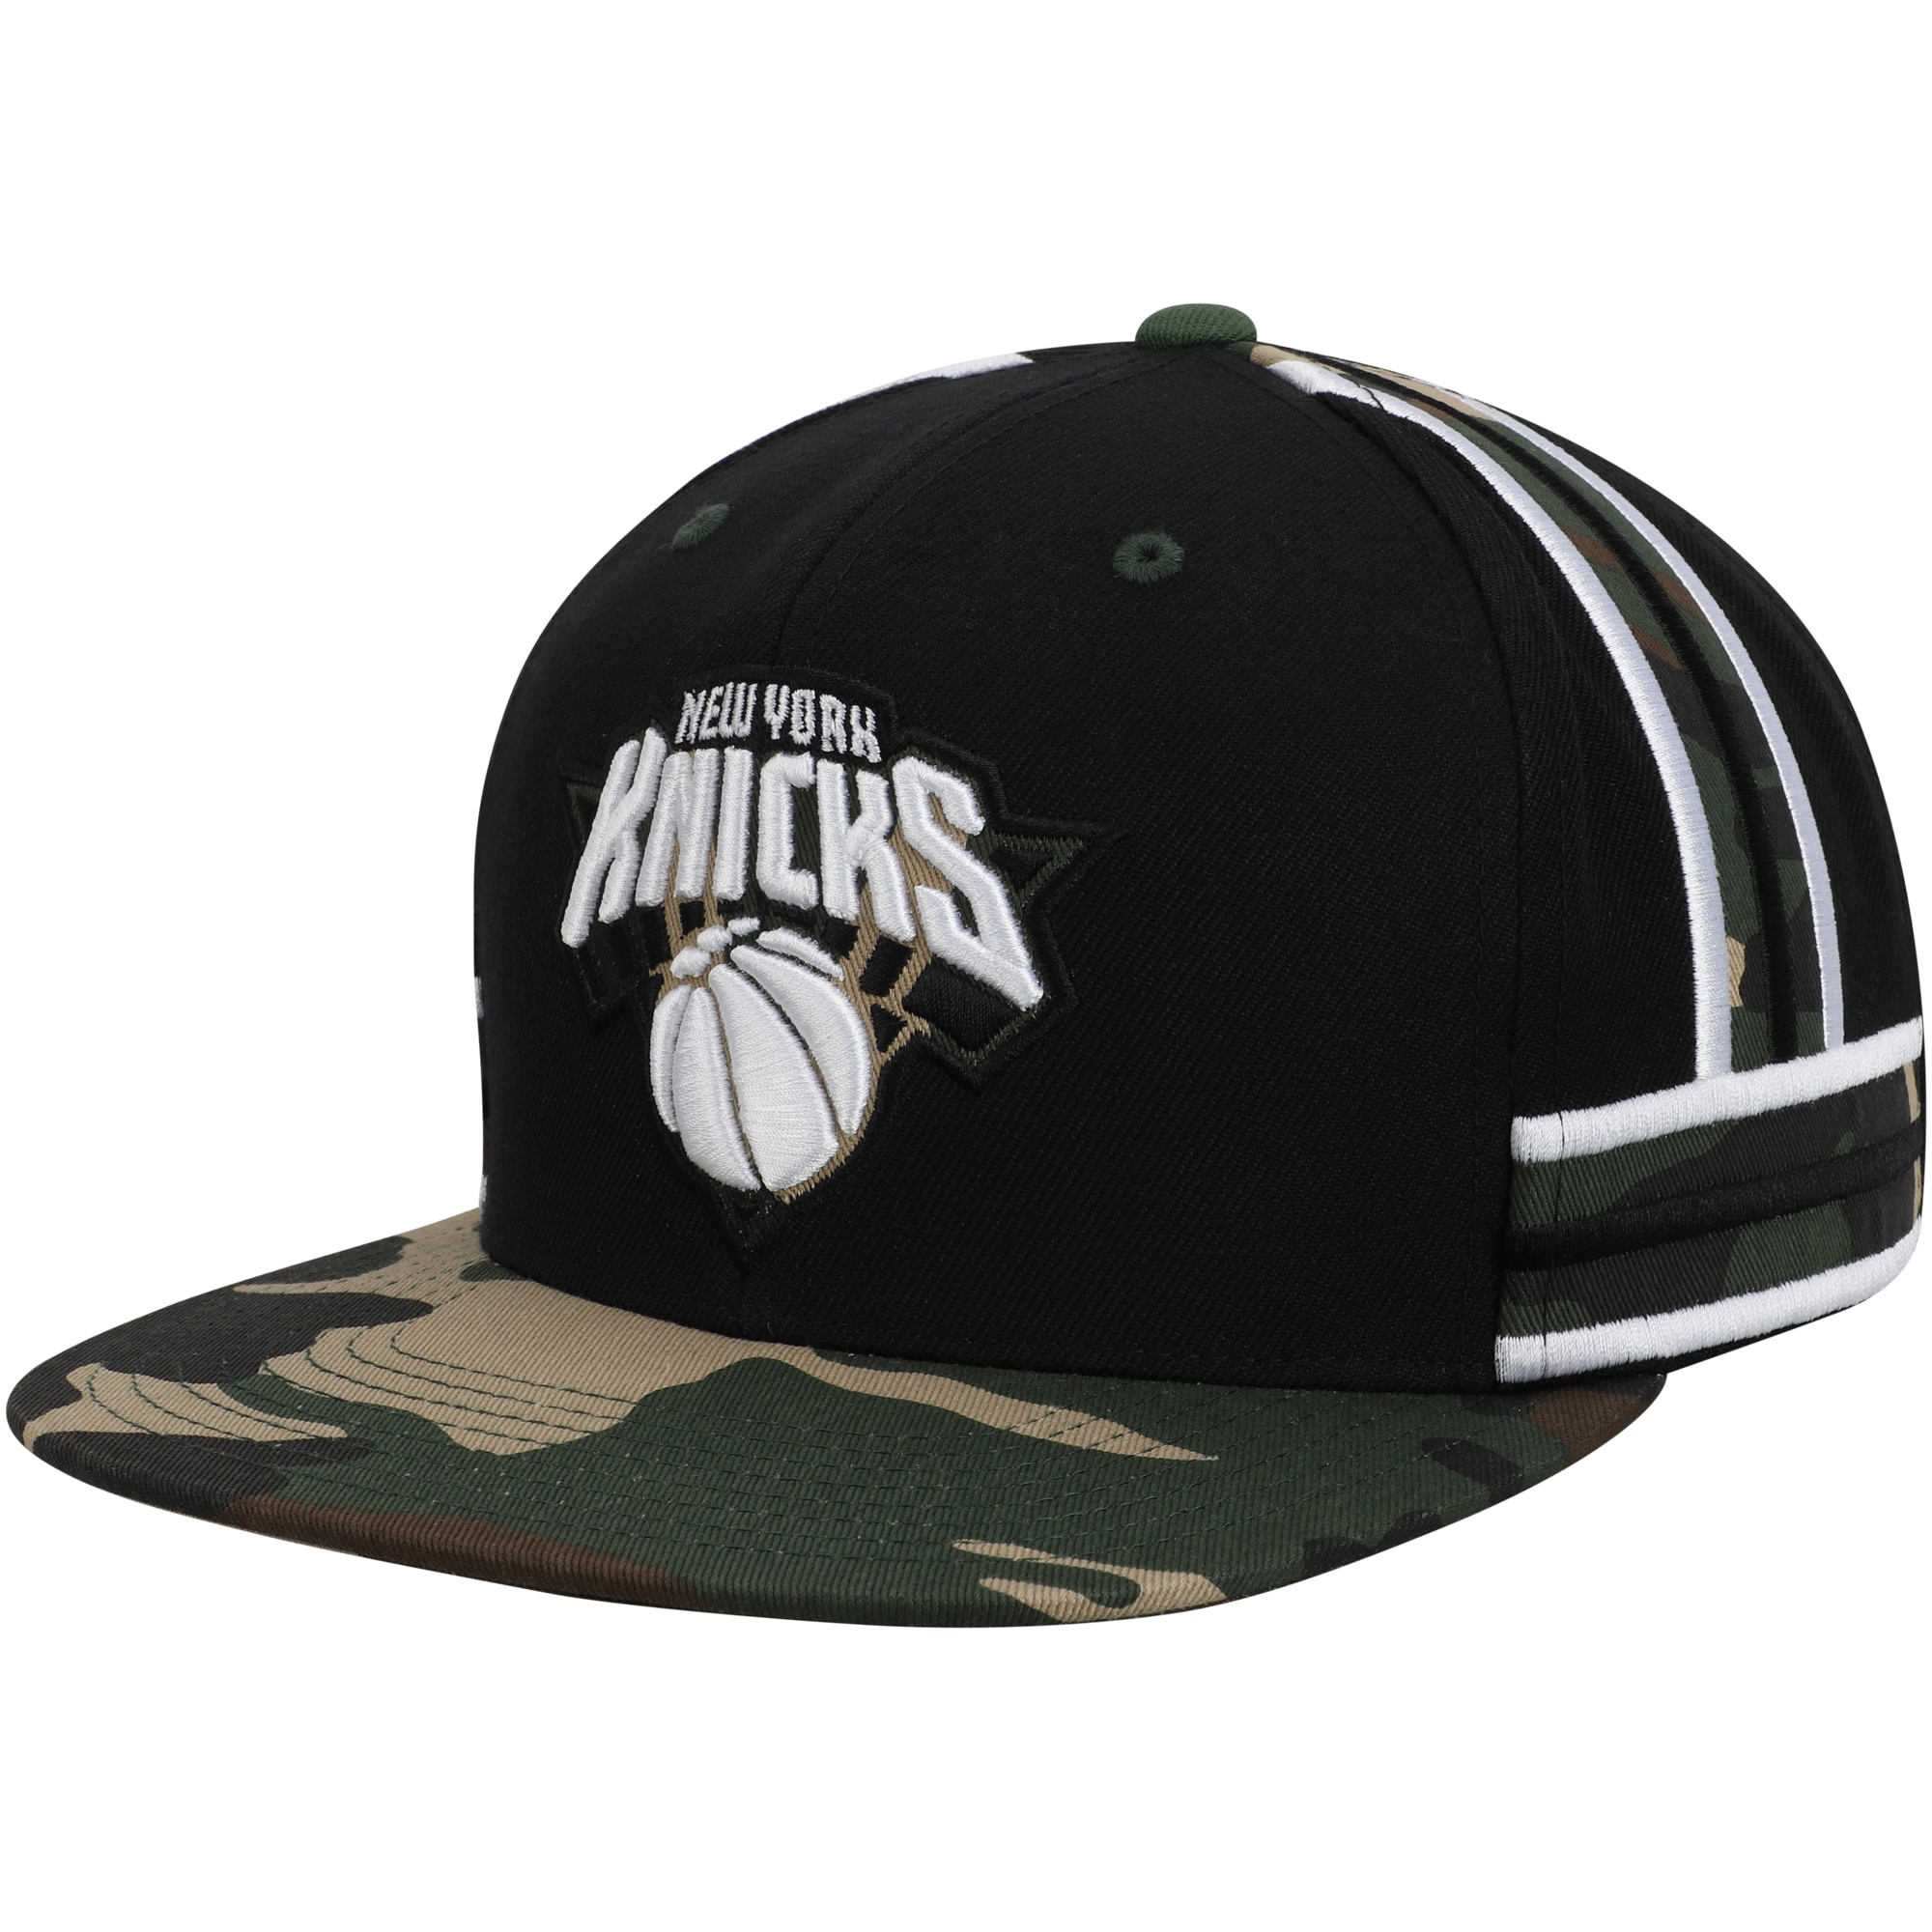 New York Knicks Mitchell & Ness Straight Camo Snapback Hat - Black